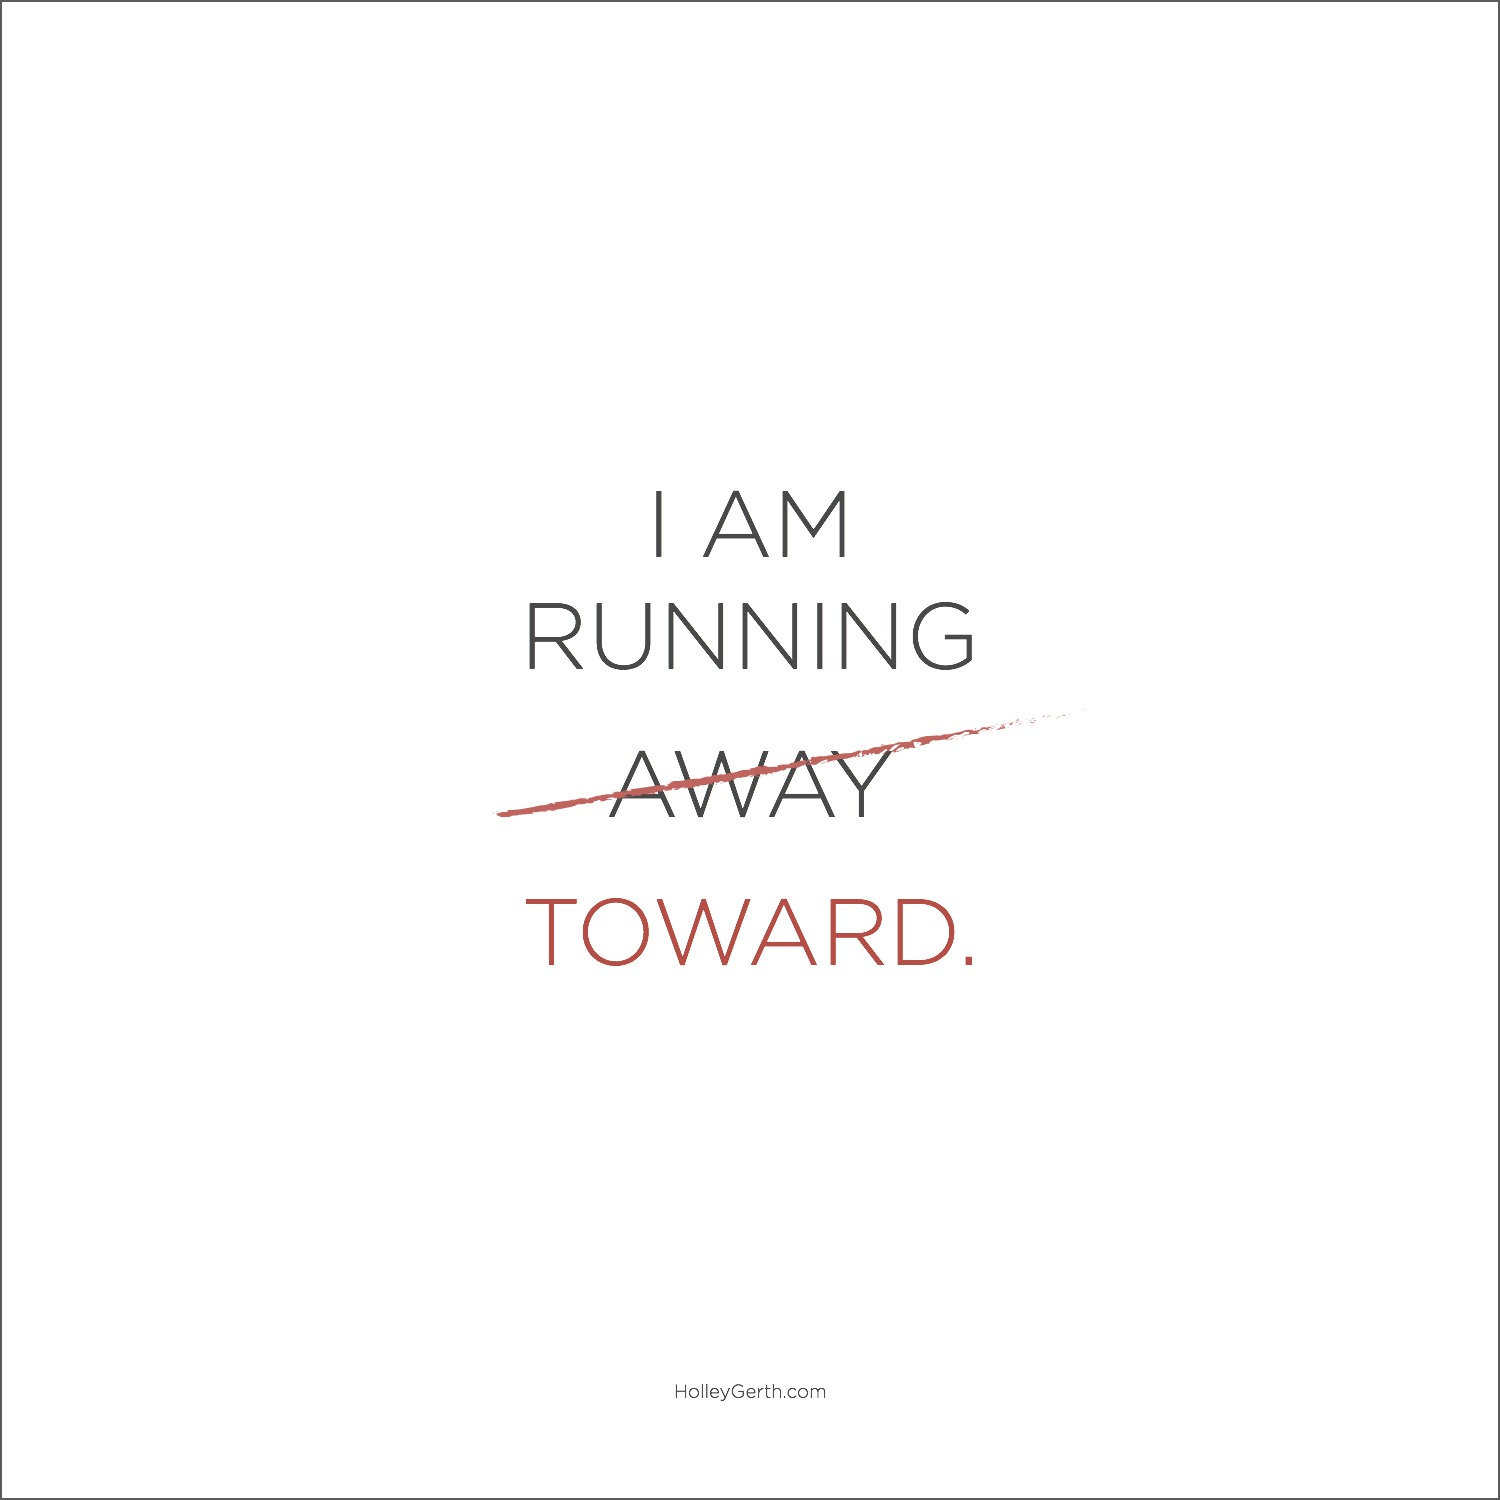 I am done running away. From now on, I am running toward.